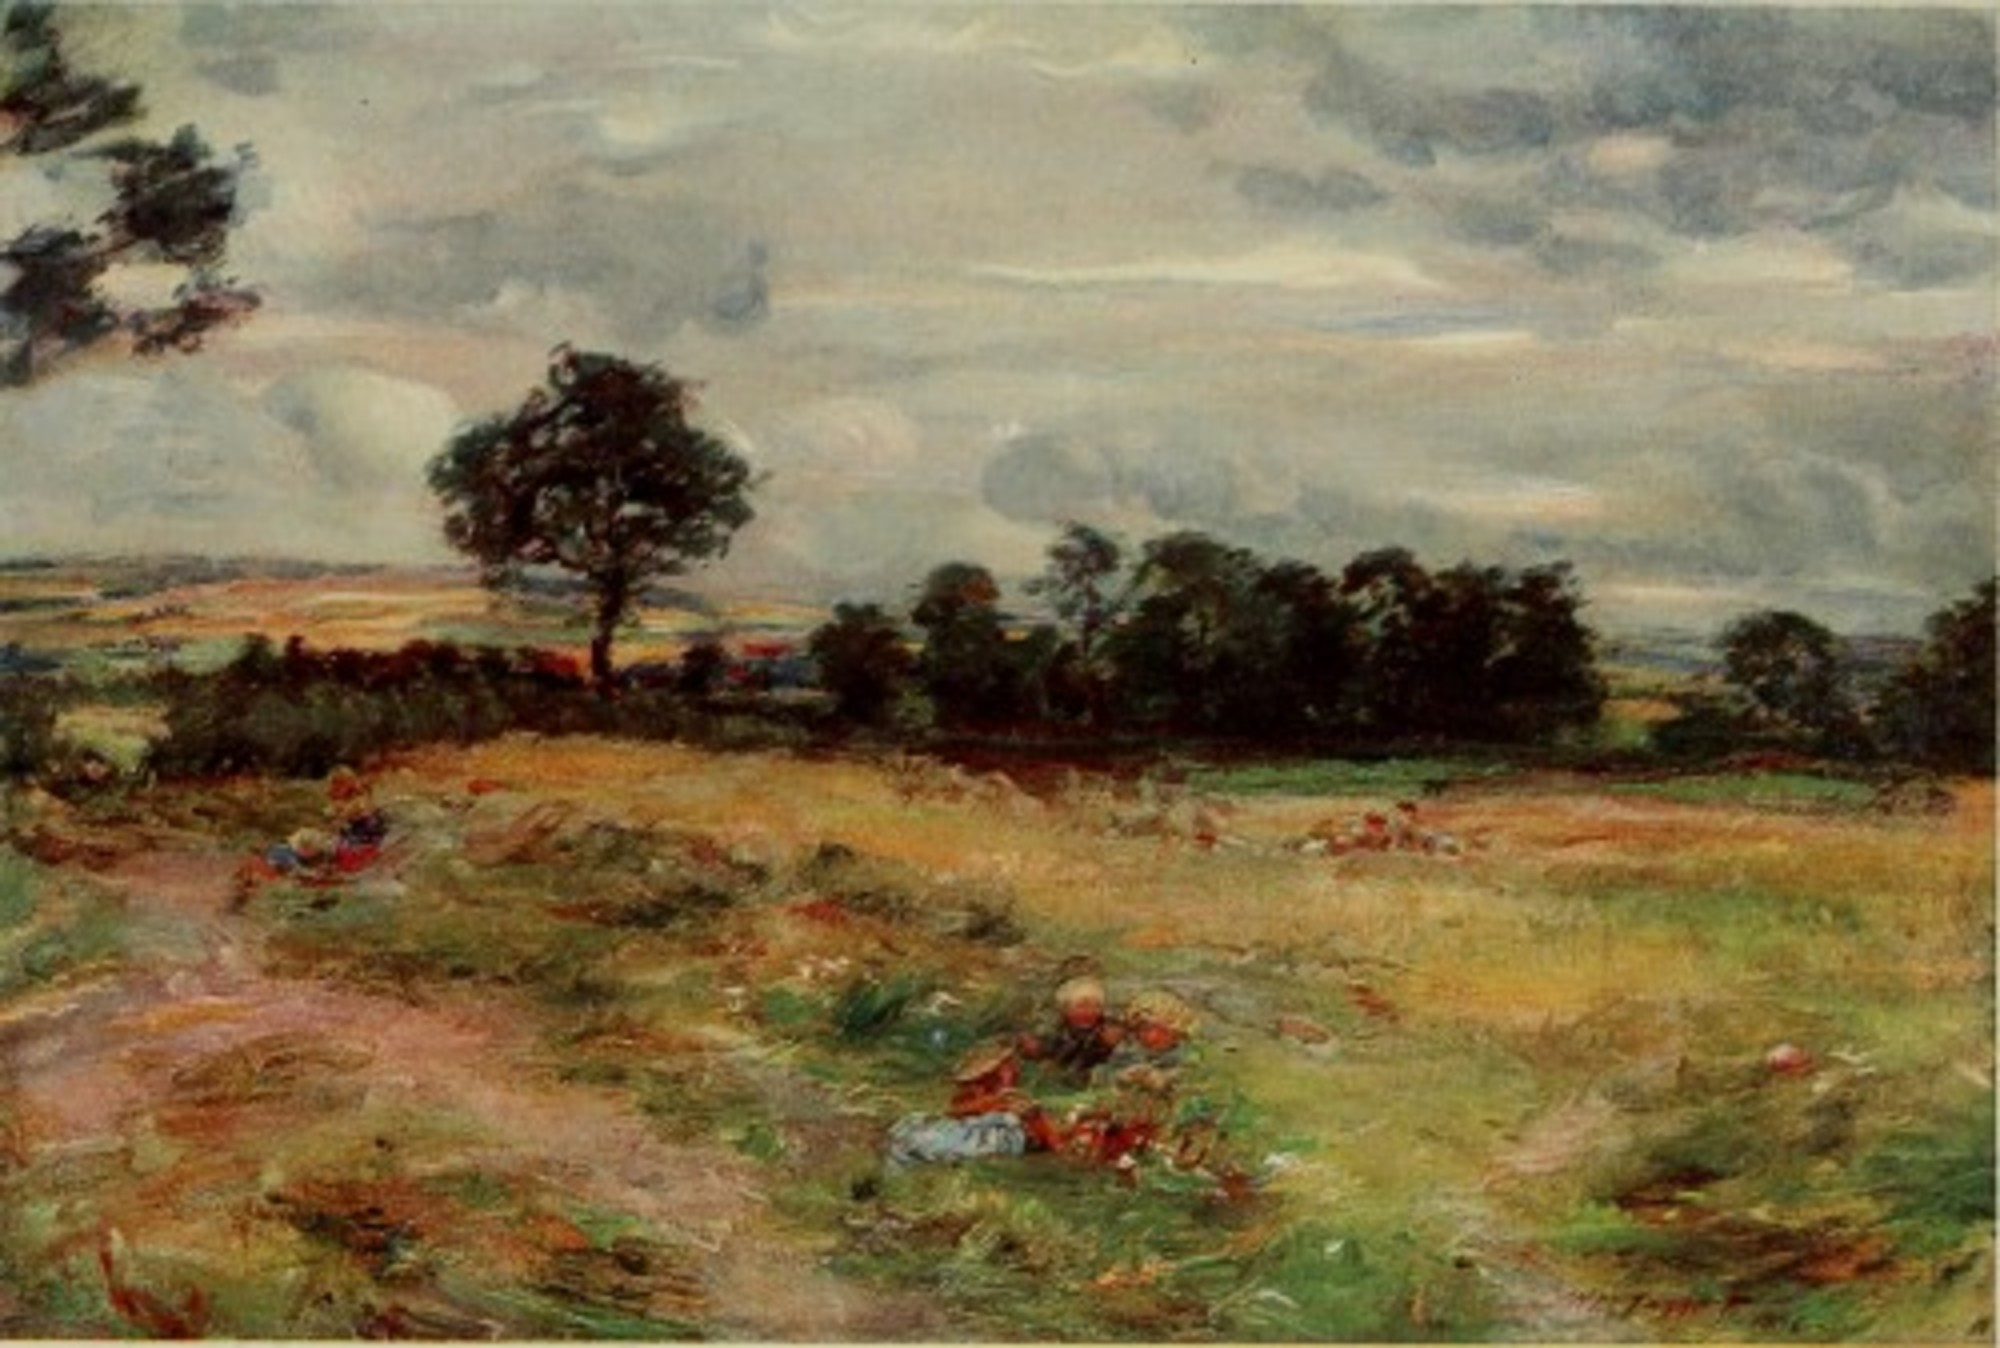 William-McTaggart---Harvest-at-Broomieknowe.jpg